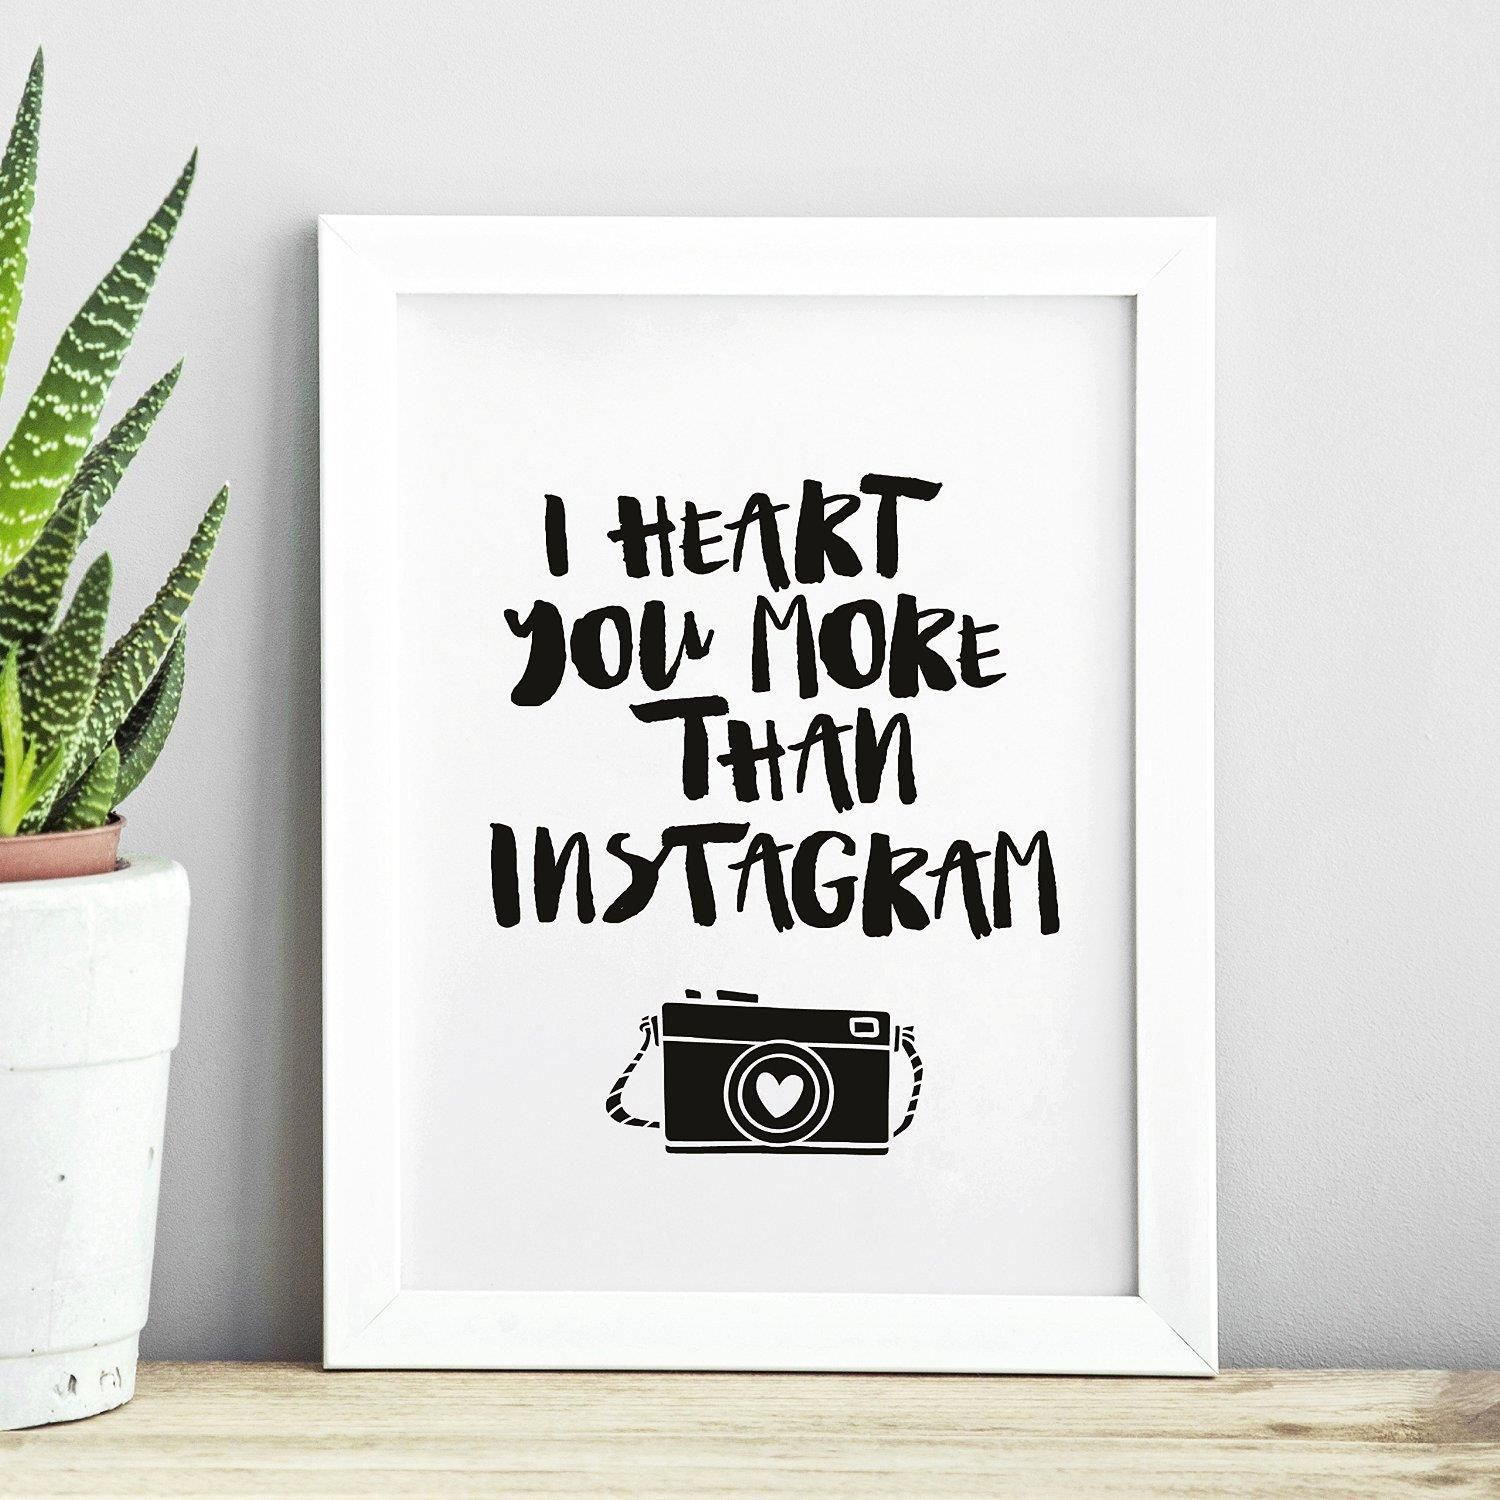 I Heart You More Than Instagram http://www.amazon.com/dp/B01A203EHS motivationmonday print inspirational black white poster motivational quote inspiring gratitude word art bedroom beauty happiness success motivate inspire